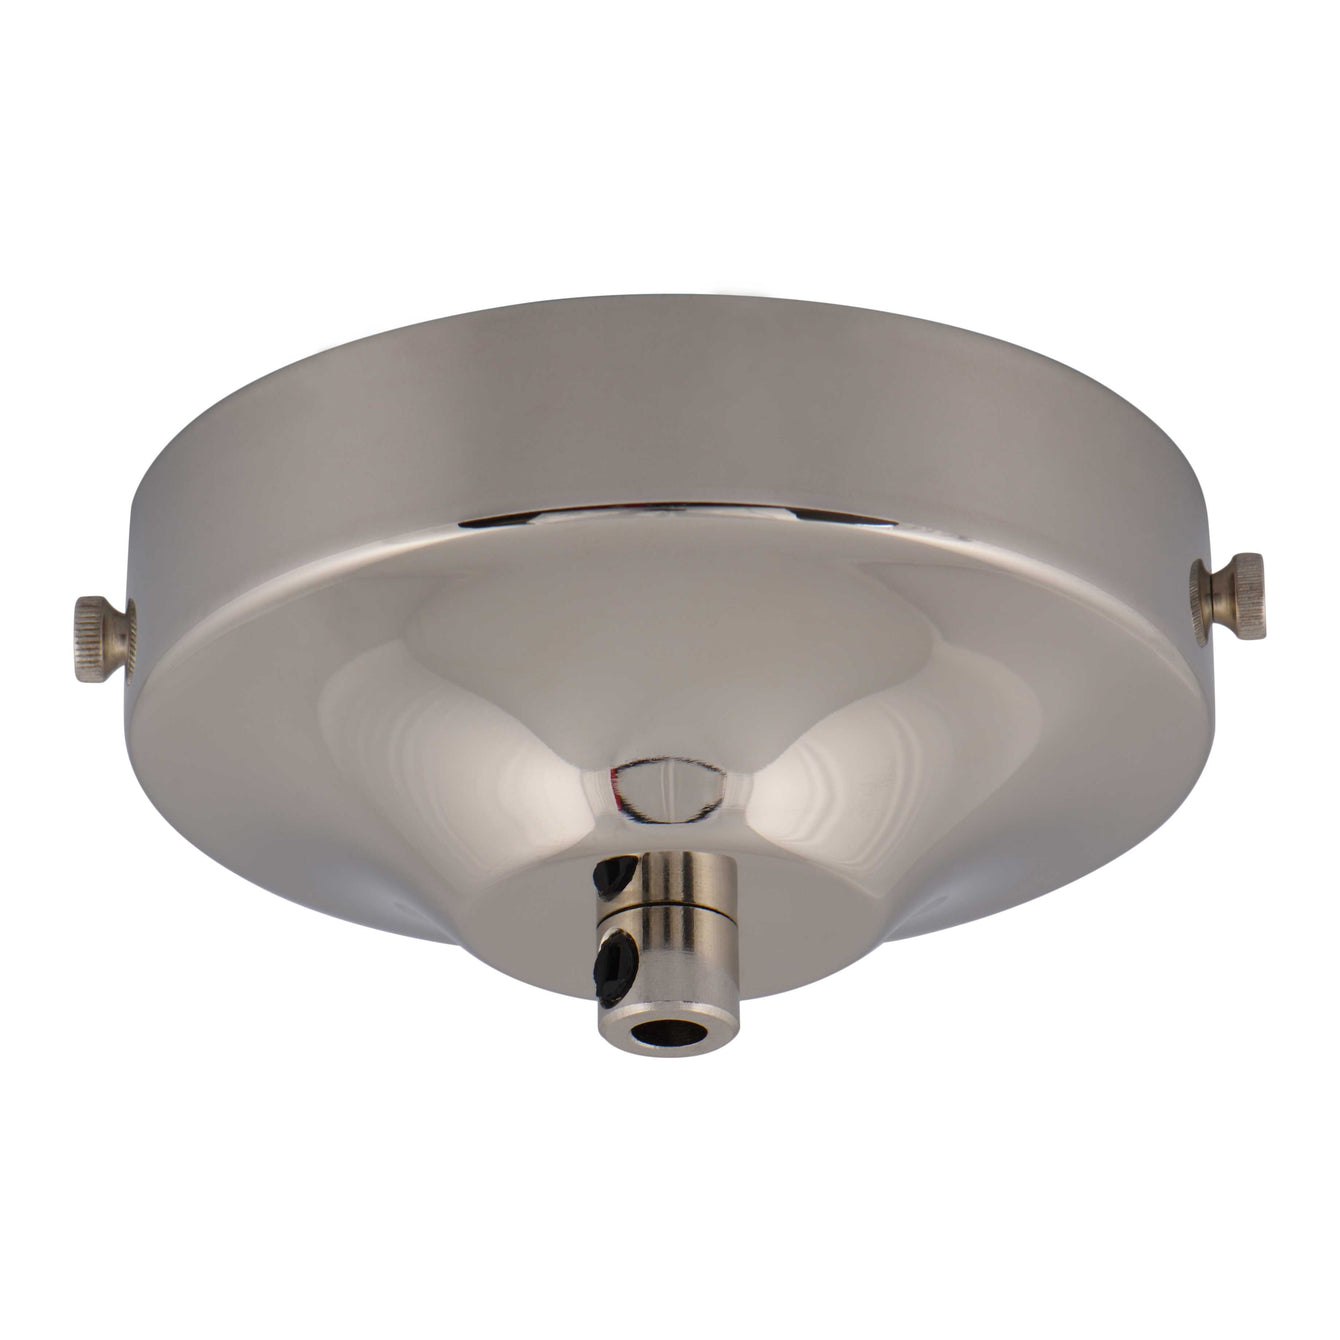 ElekTek 100mm Diameter Convex Ceiling Rose with Strap Bracket and Cord Grip Metallic Finishes Powder Coated Colours - Buy It Better Pink